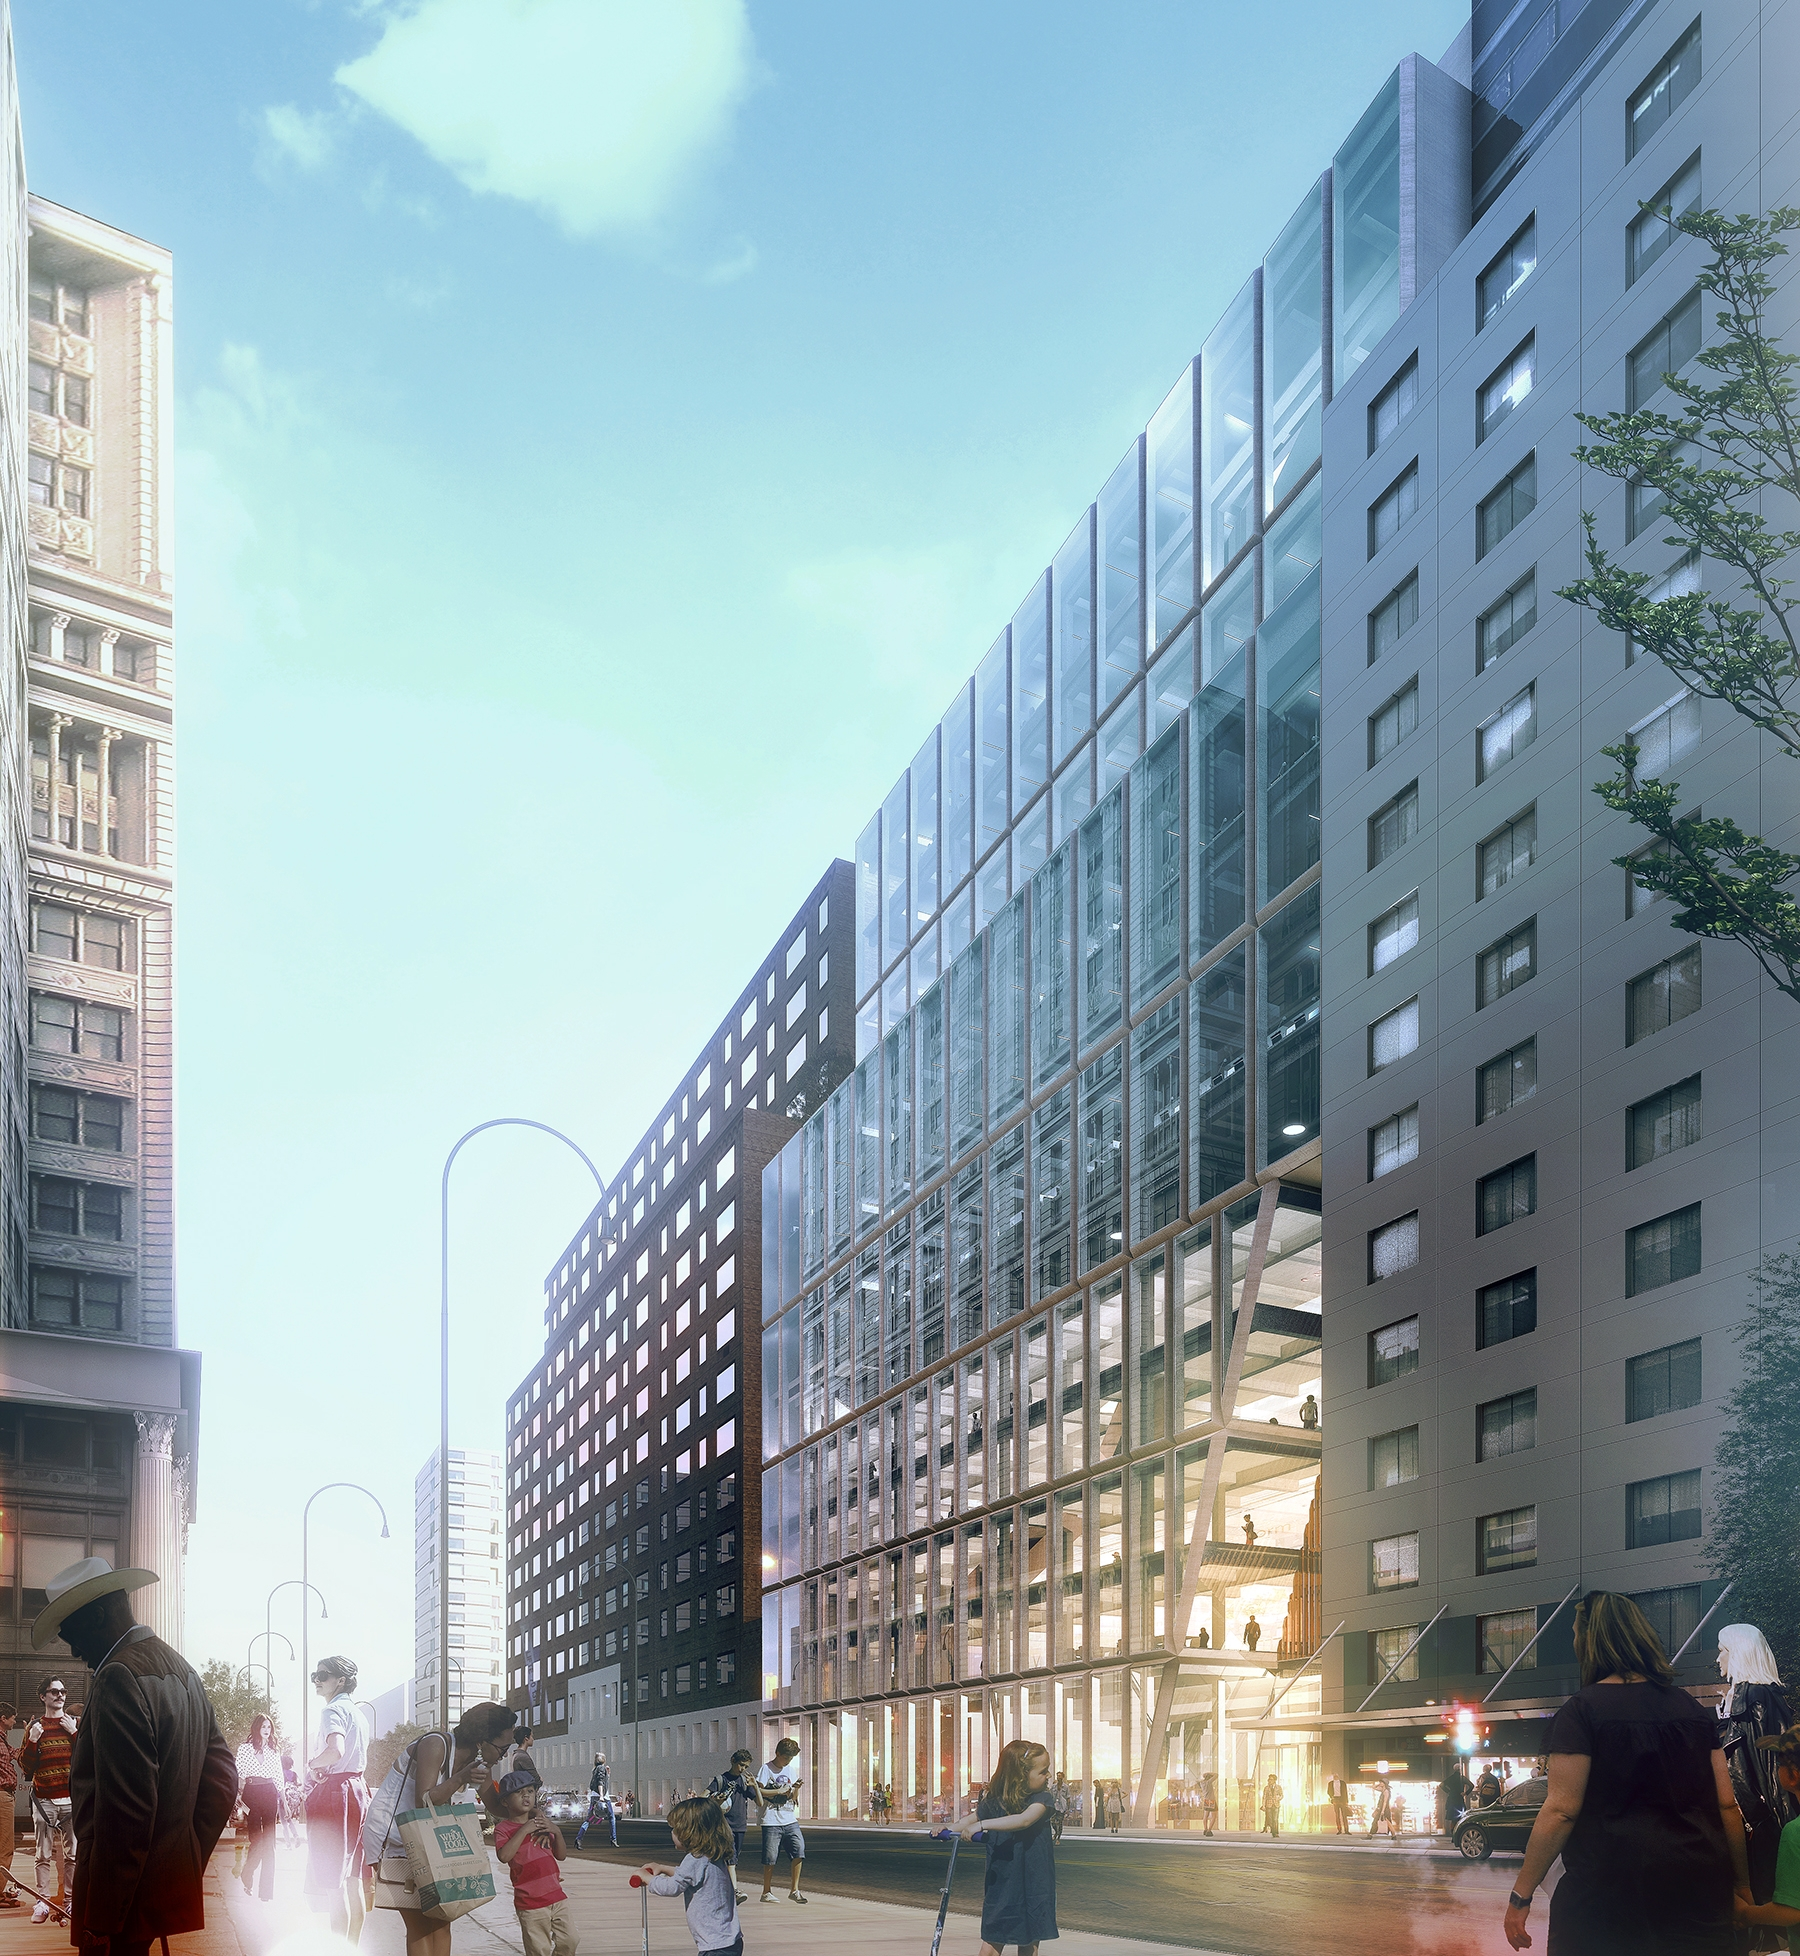 Worrell_Future expansion_14th Street_EXT02_FINAL_V2_B_SMALL.jpg